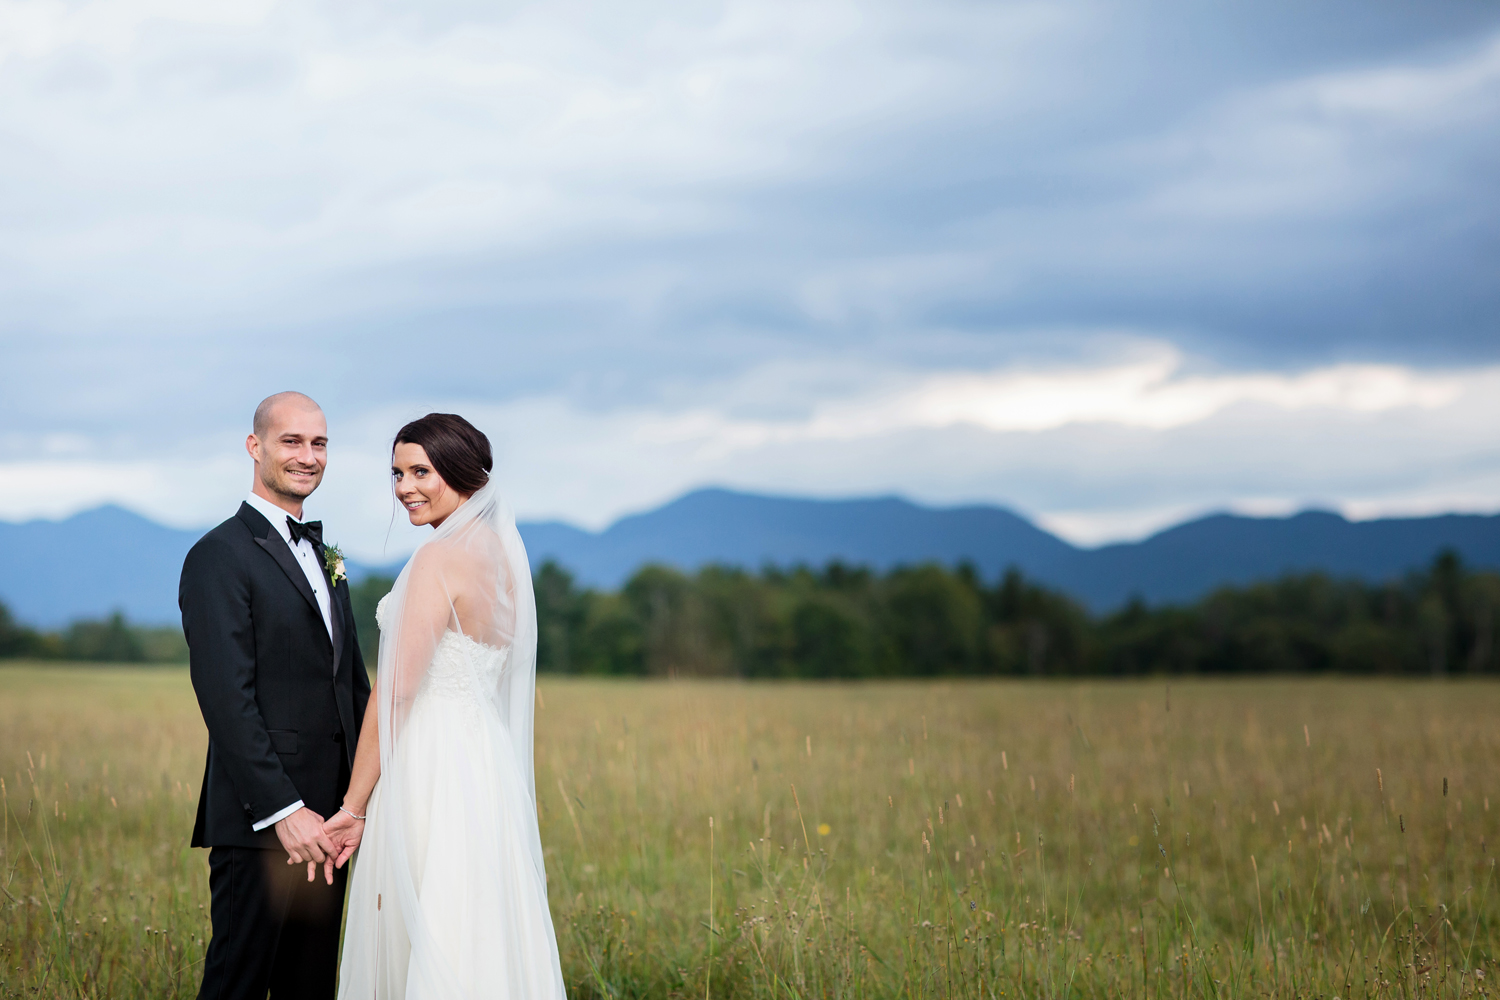 Lake Placid Wedding Photographer18.jpg